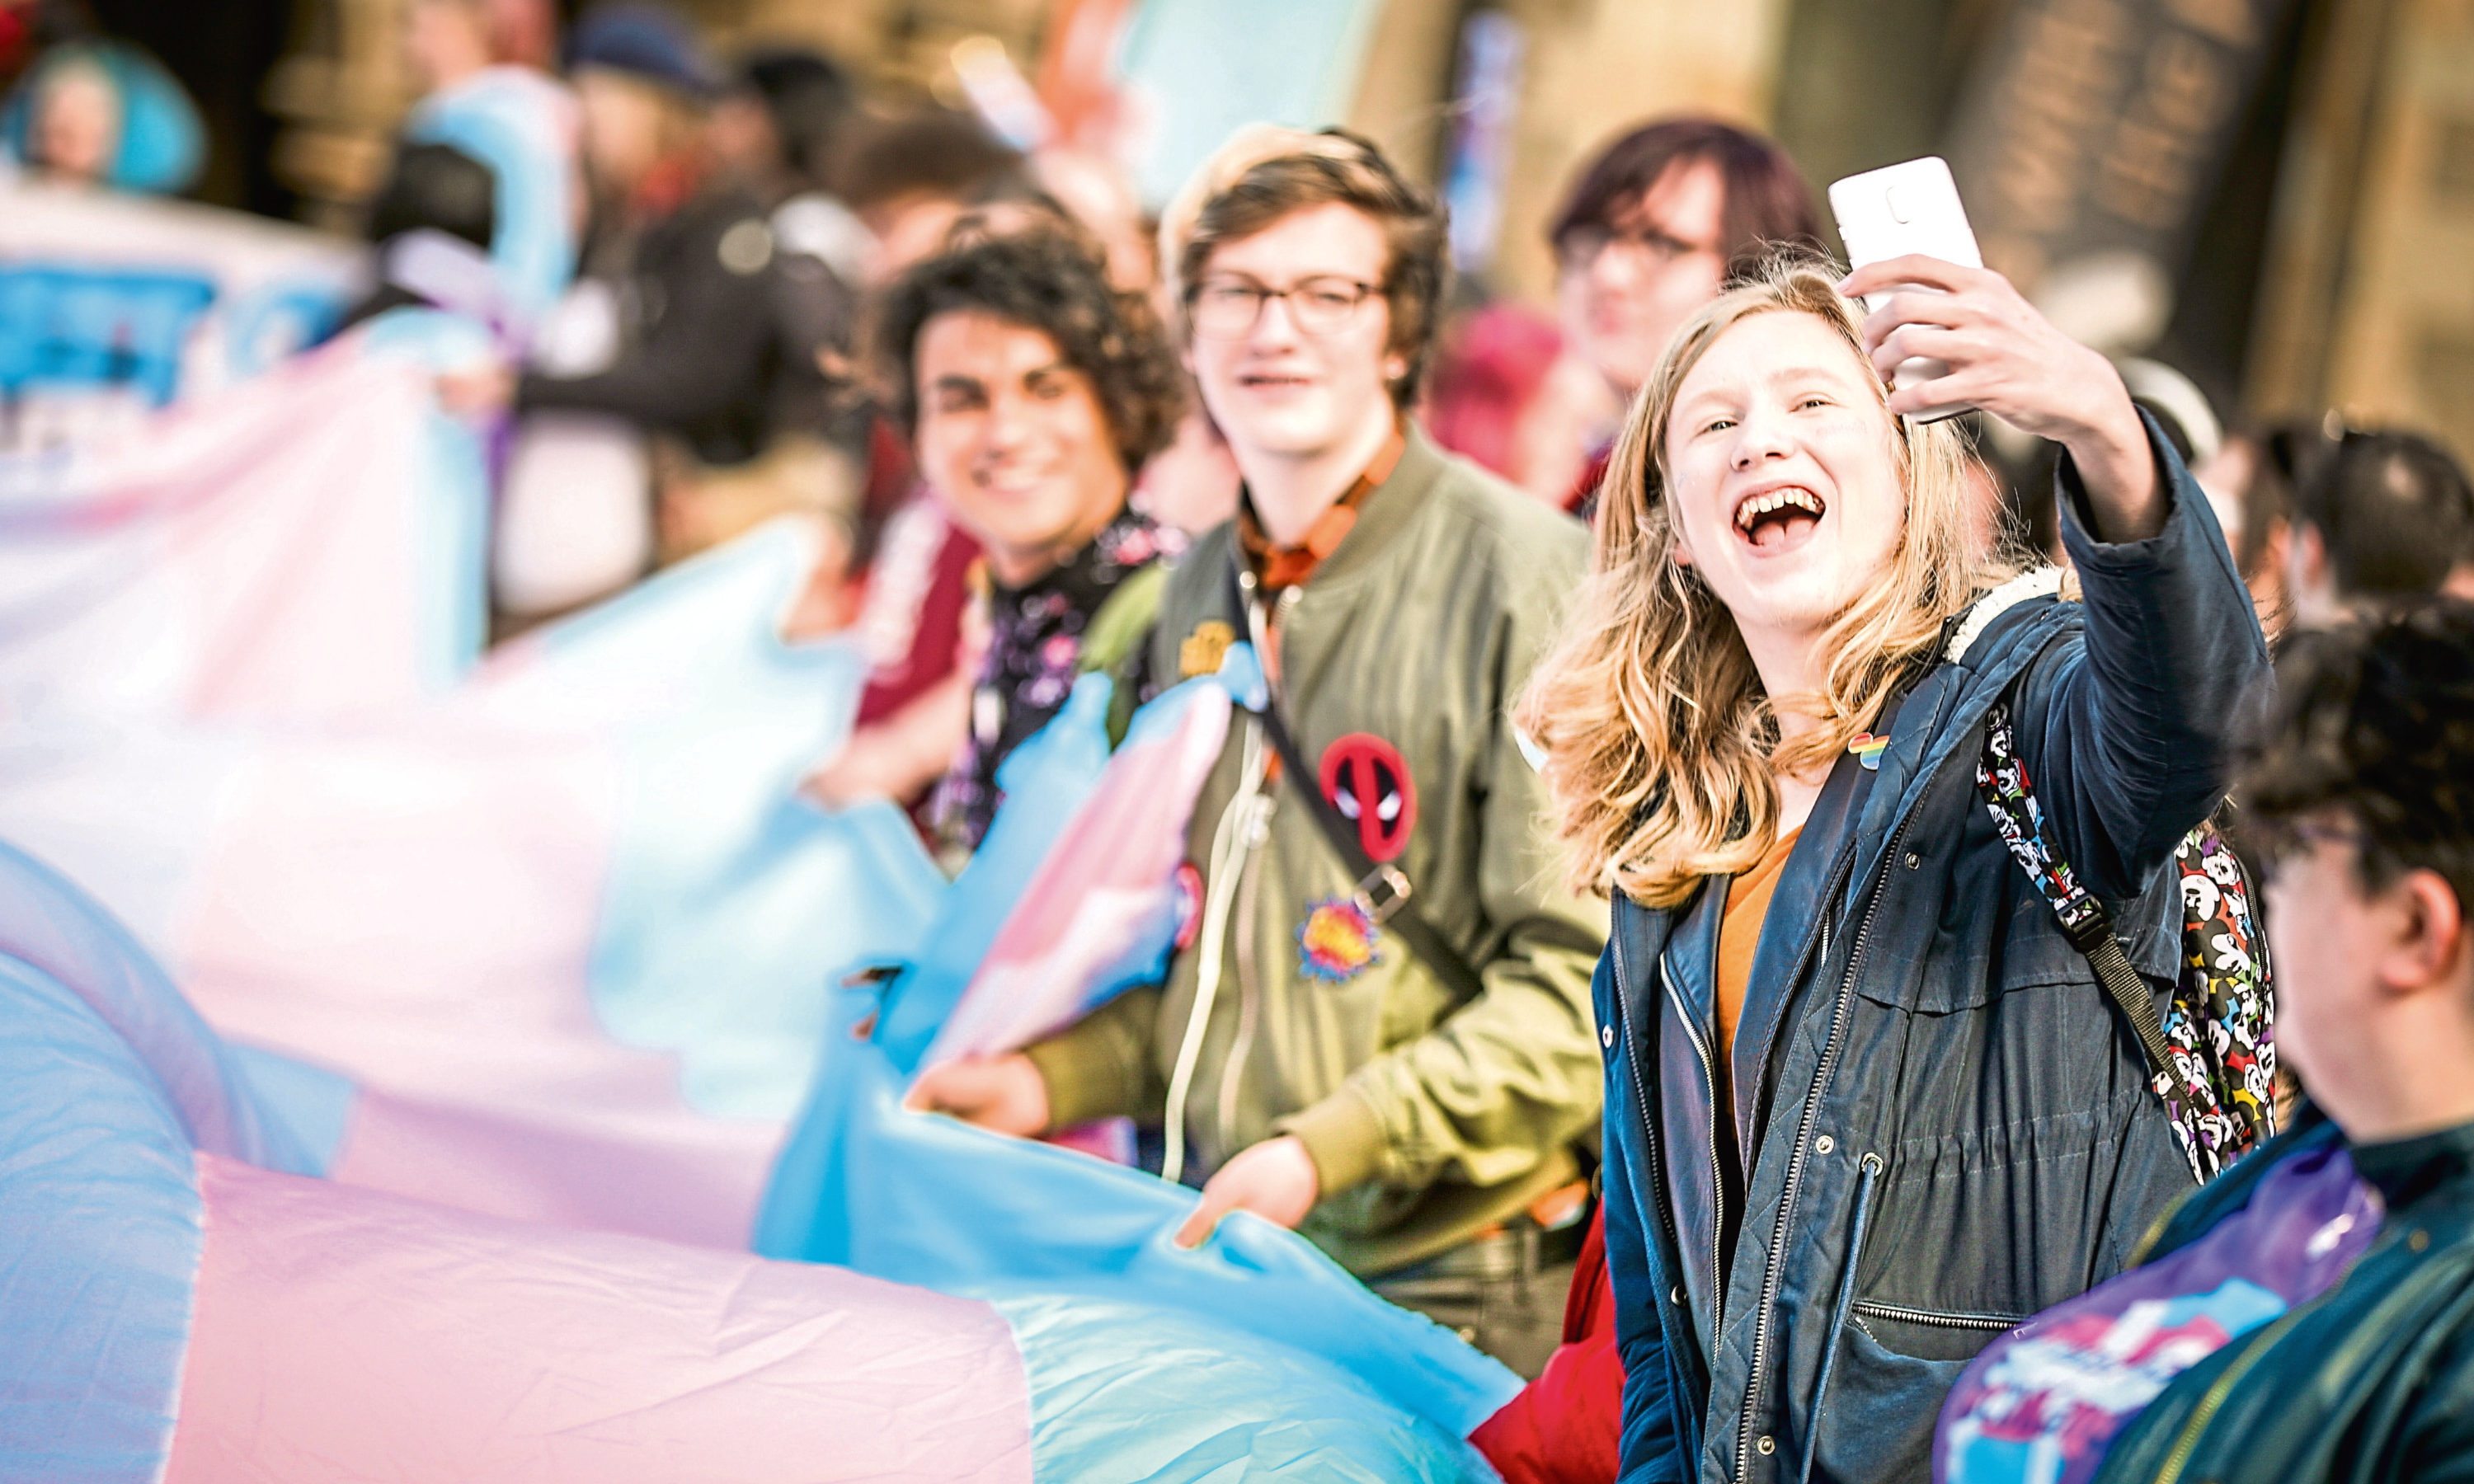 A Trans Pride march was held in Dundee on Saturday.